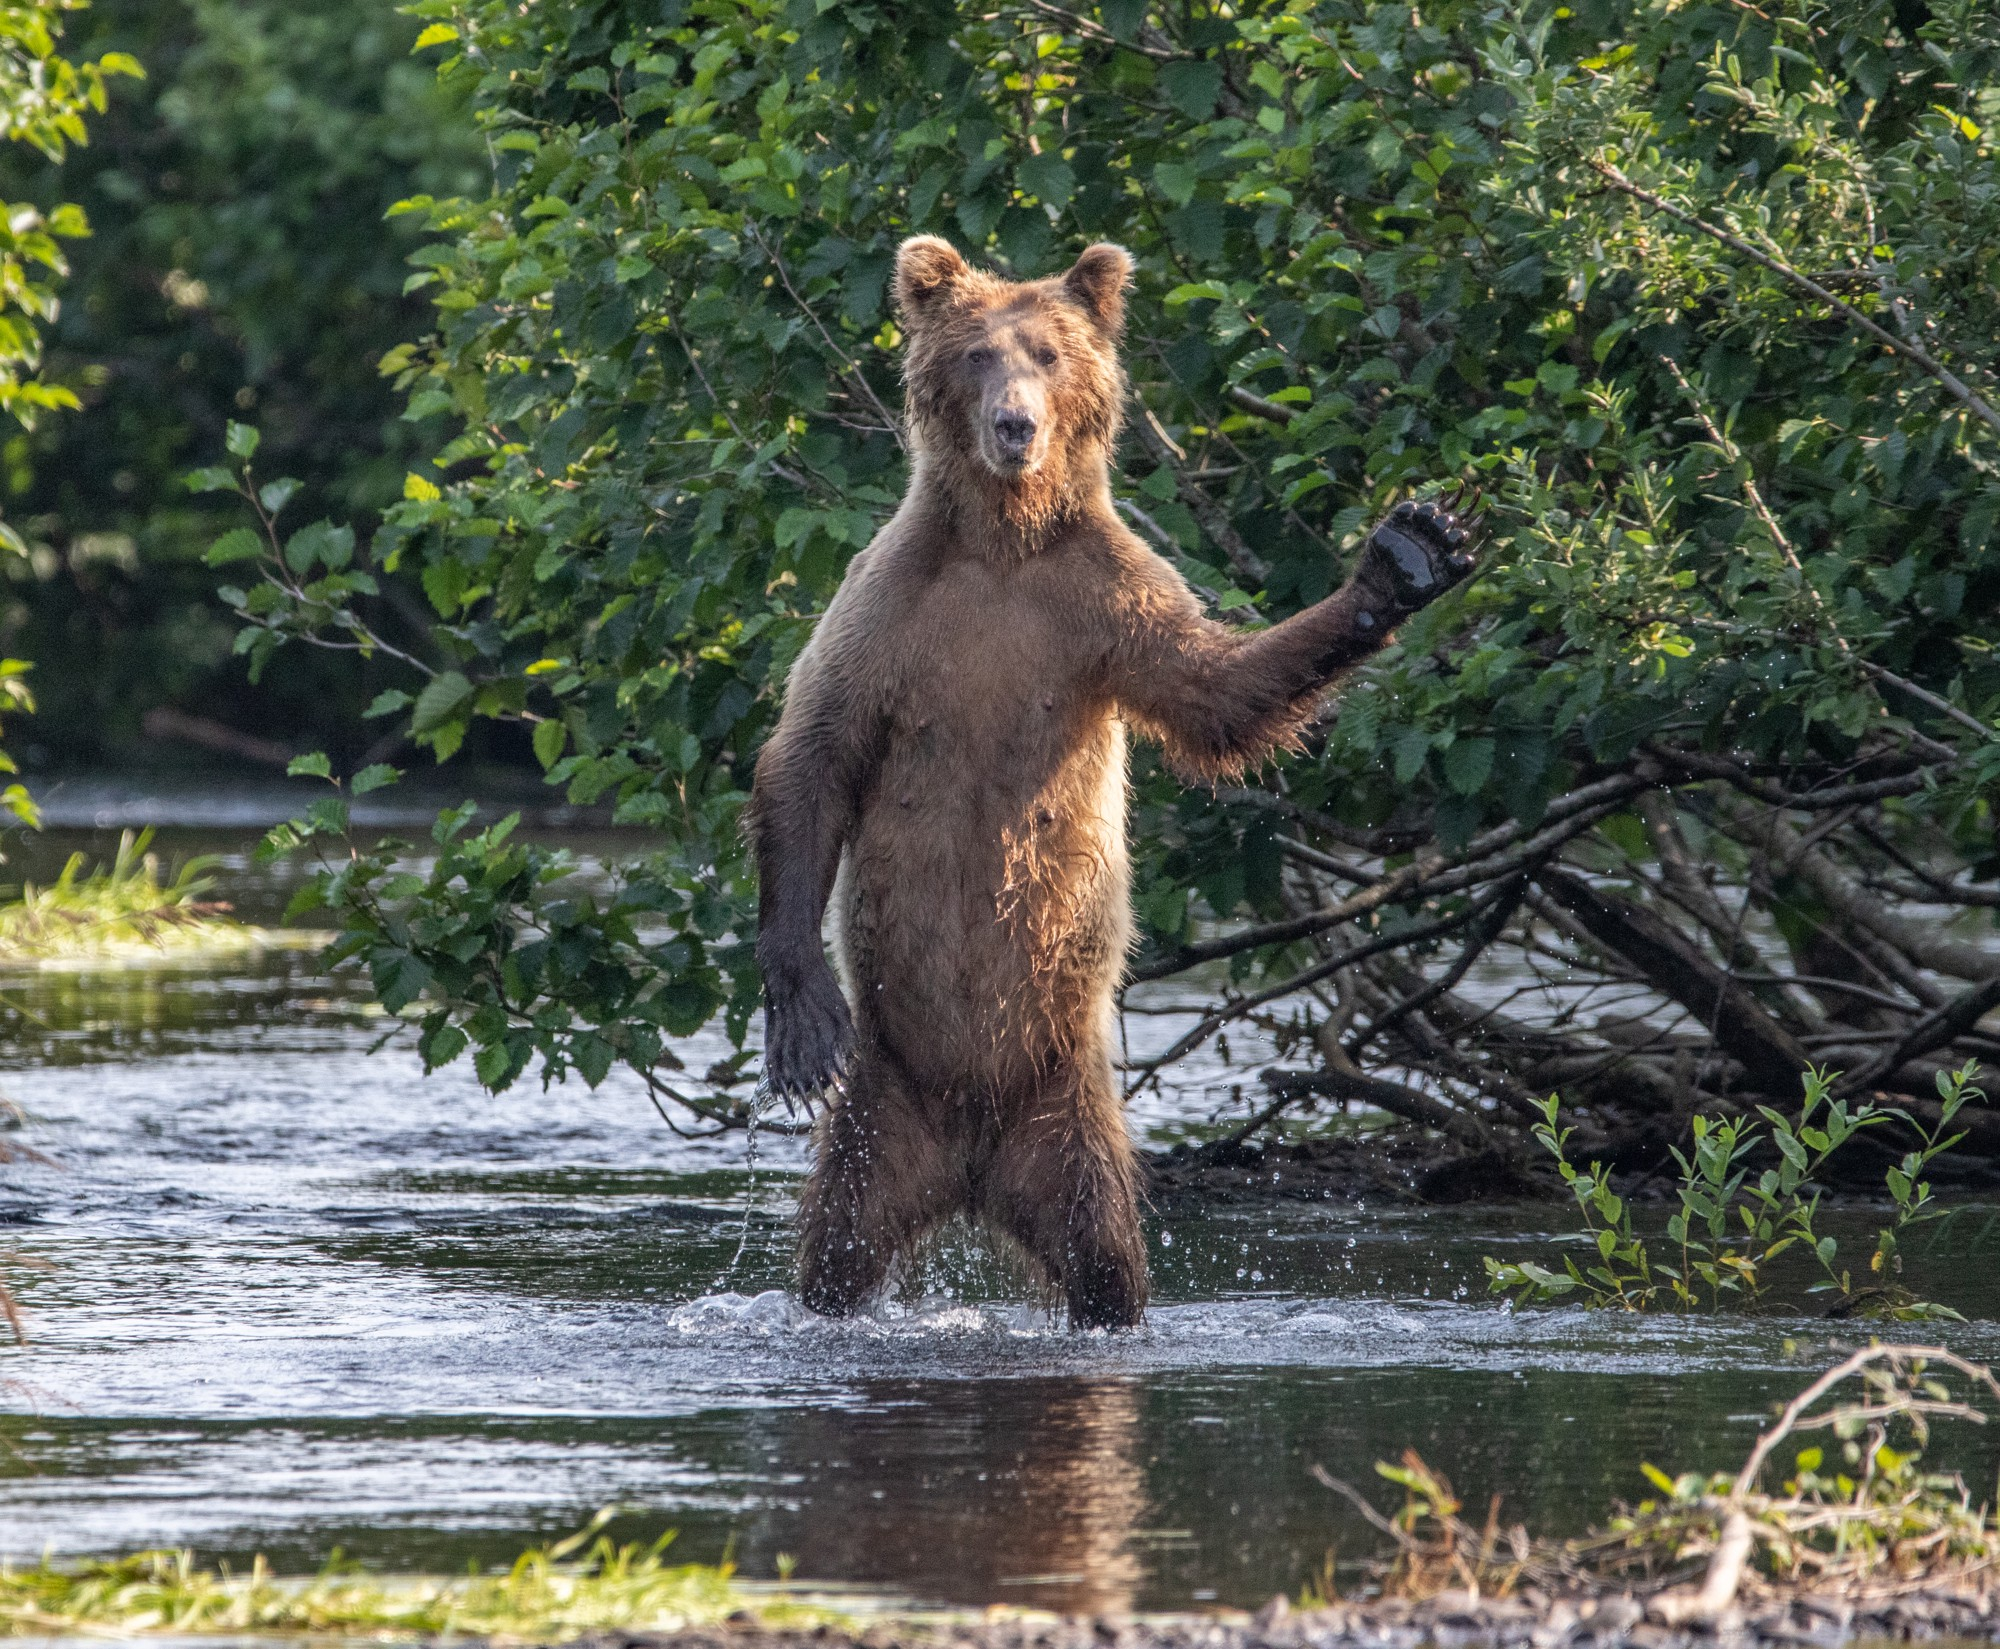 An adolescent brown bear standing on his back legs in a creek with his arm outstretched in a semi wave, looking scruffy